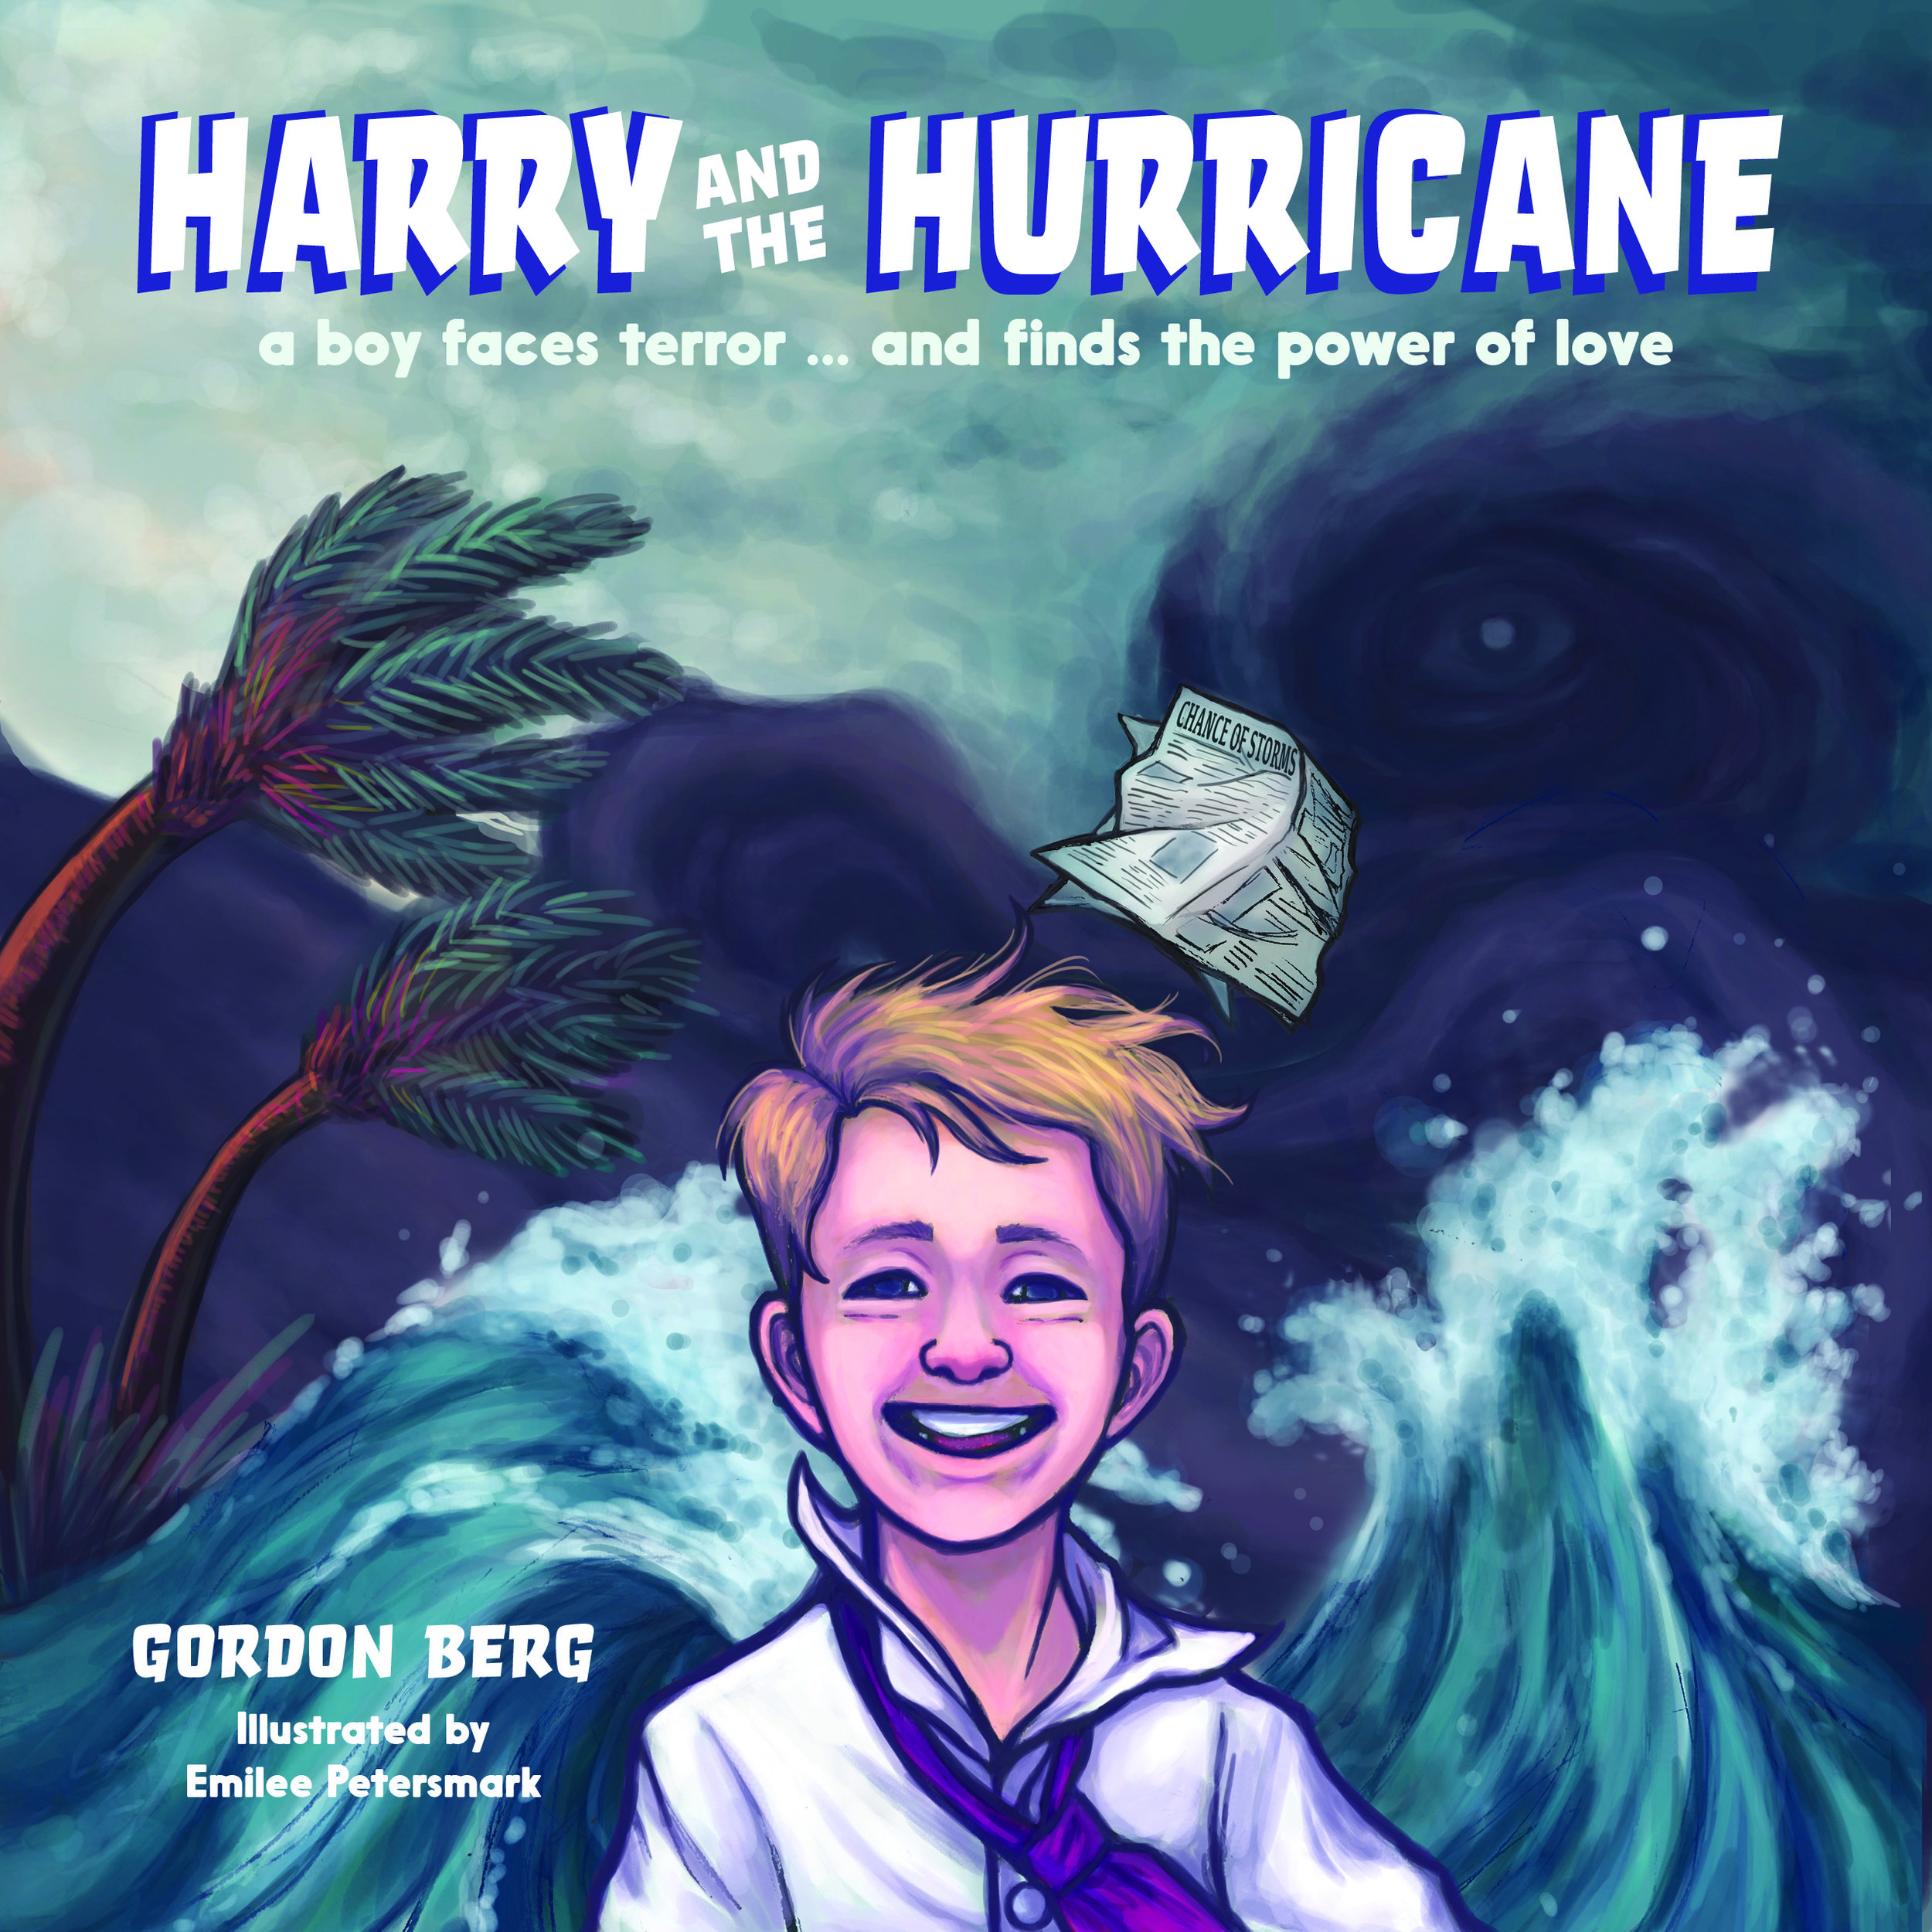 """- """"Harry and the Hurricane ... combines some whimsical elements with real fear, and an excellent amount of local history."""" —John Allen, Executive Director, Coral Gables Museum""""Read it with your kids!"""" —Anne-Marie Oomen, Next Generation Indie Award for Memoir and co-author of illustrated tale in poems, The Lake Michigan MermaidMore about the authorBuy the book on Amazon"""